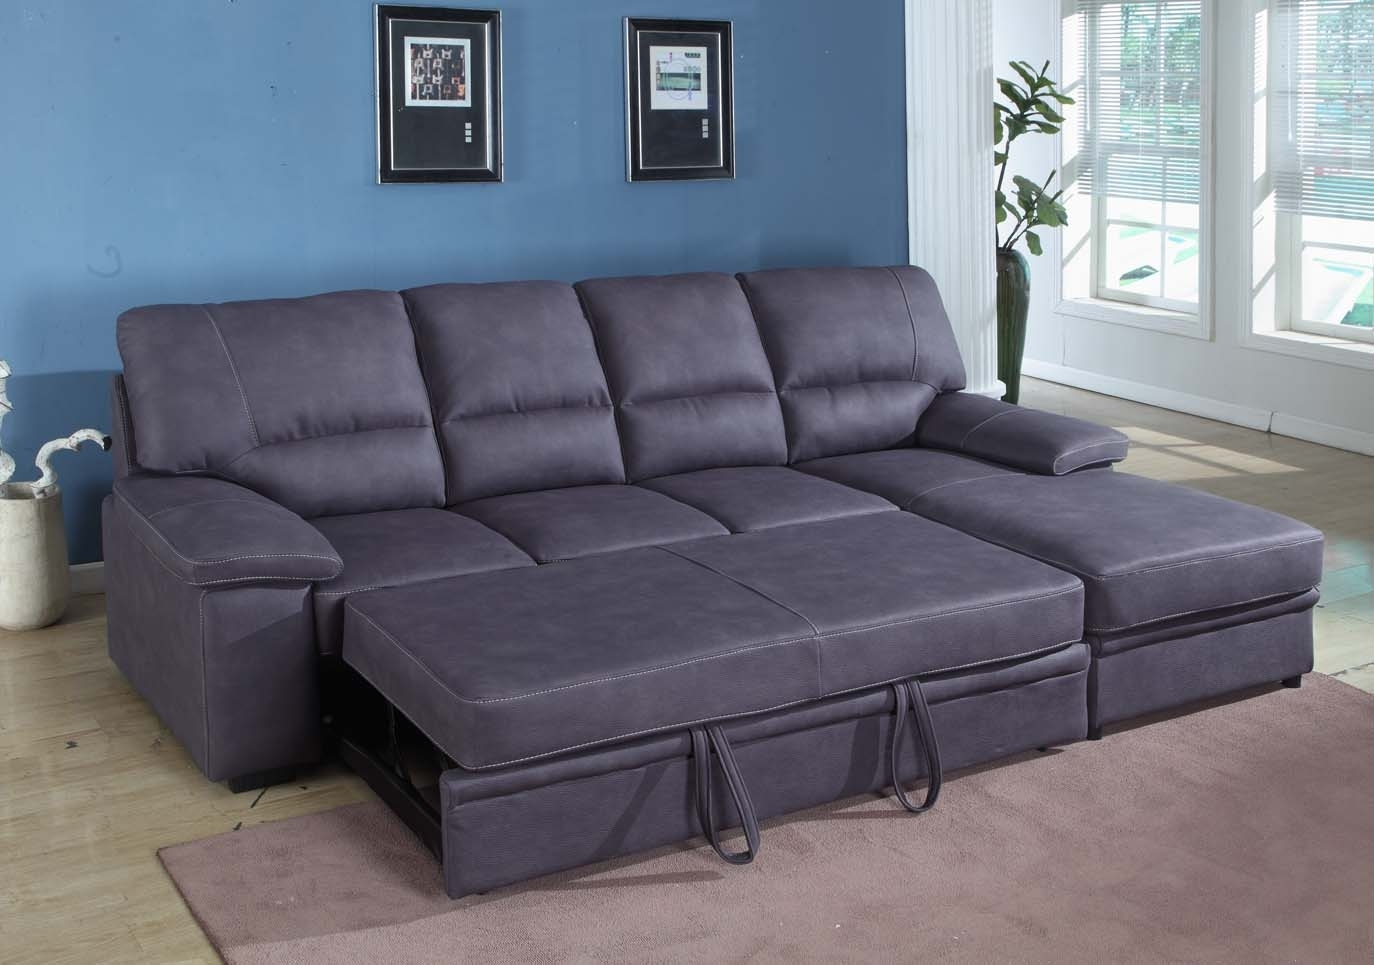 Furniture : Sectional Sofa Nj Best Sectional Sofa Under 500 Intended For Vt Sectional Sofas (Image 5 of 10)